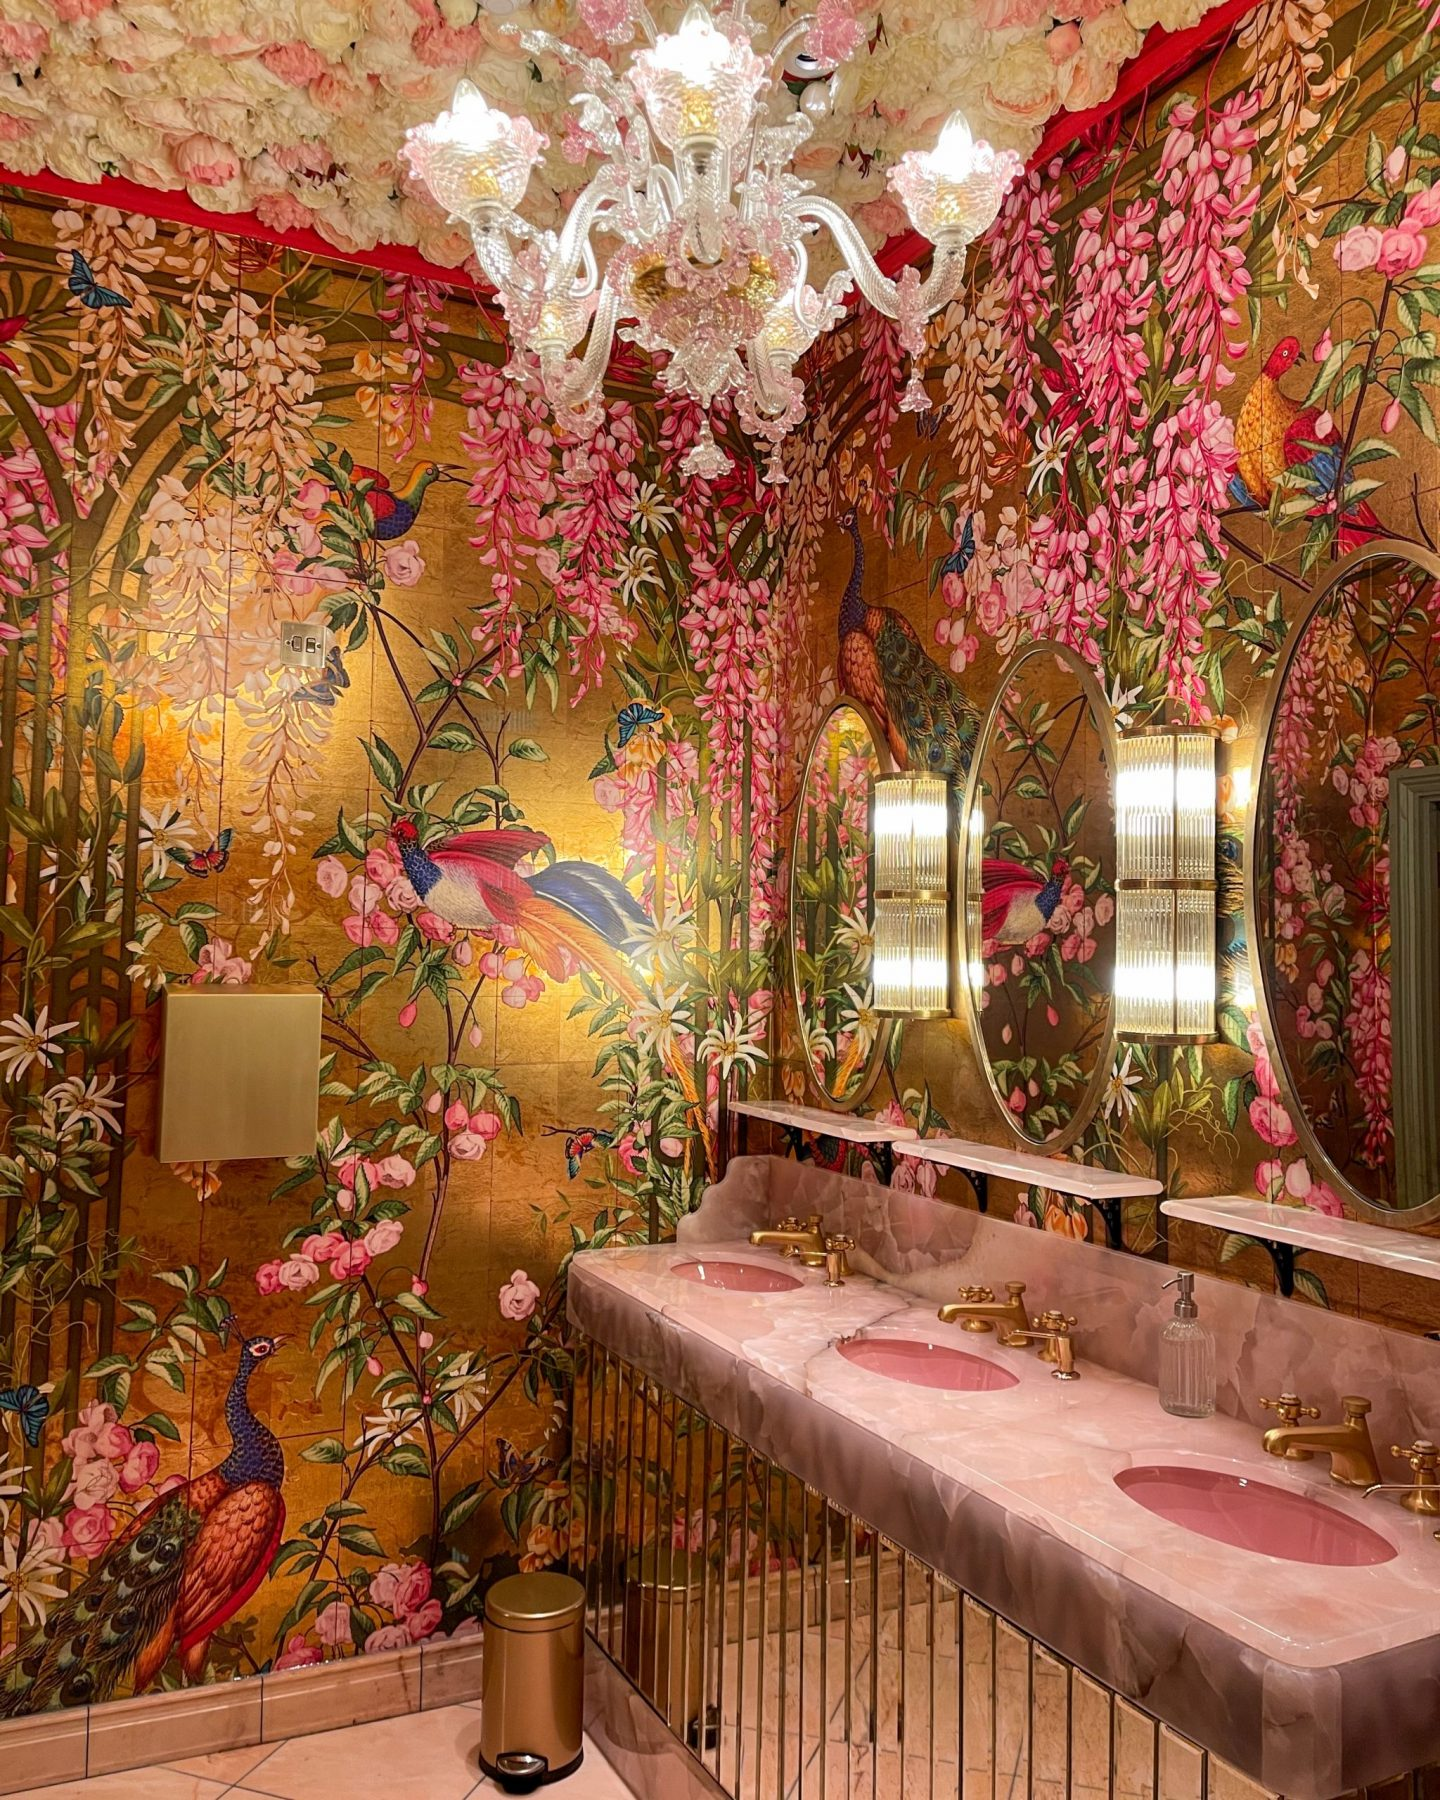 The toilets at The Ivy on the Cathedral Green in Exeter, Devon, Katie KALANCHOE